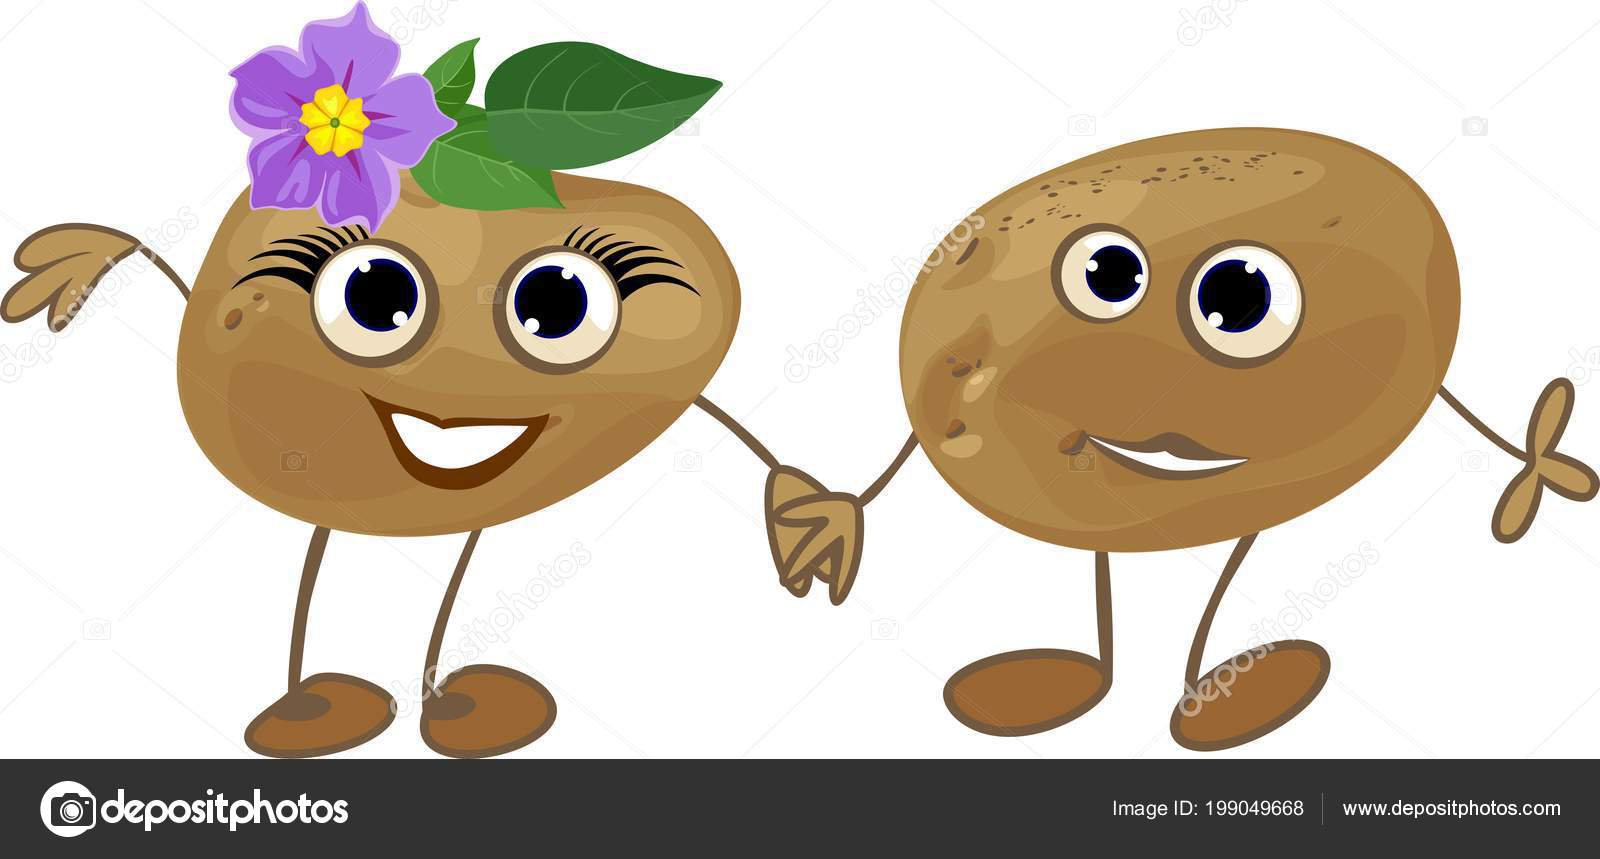 Couple Funny Potatoes Personification Gender Symbols ⬇ Vector Image by ©  mariaflaya | Vector Stock 199049668